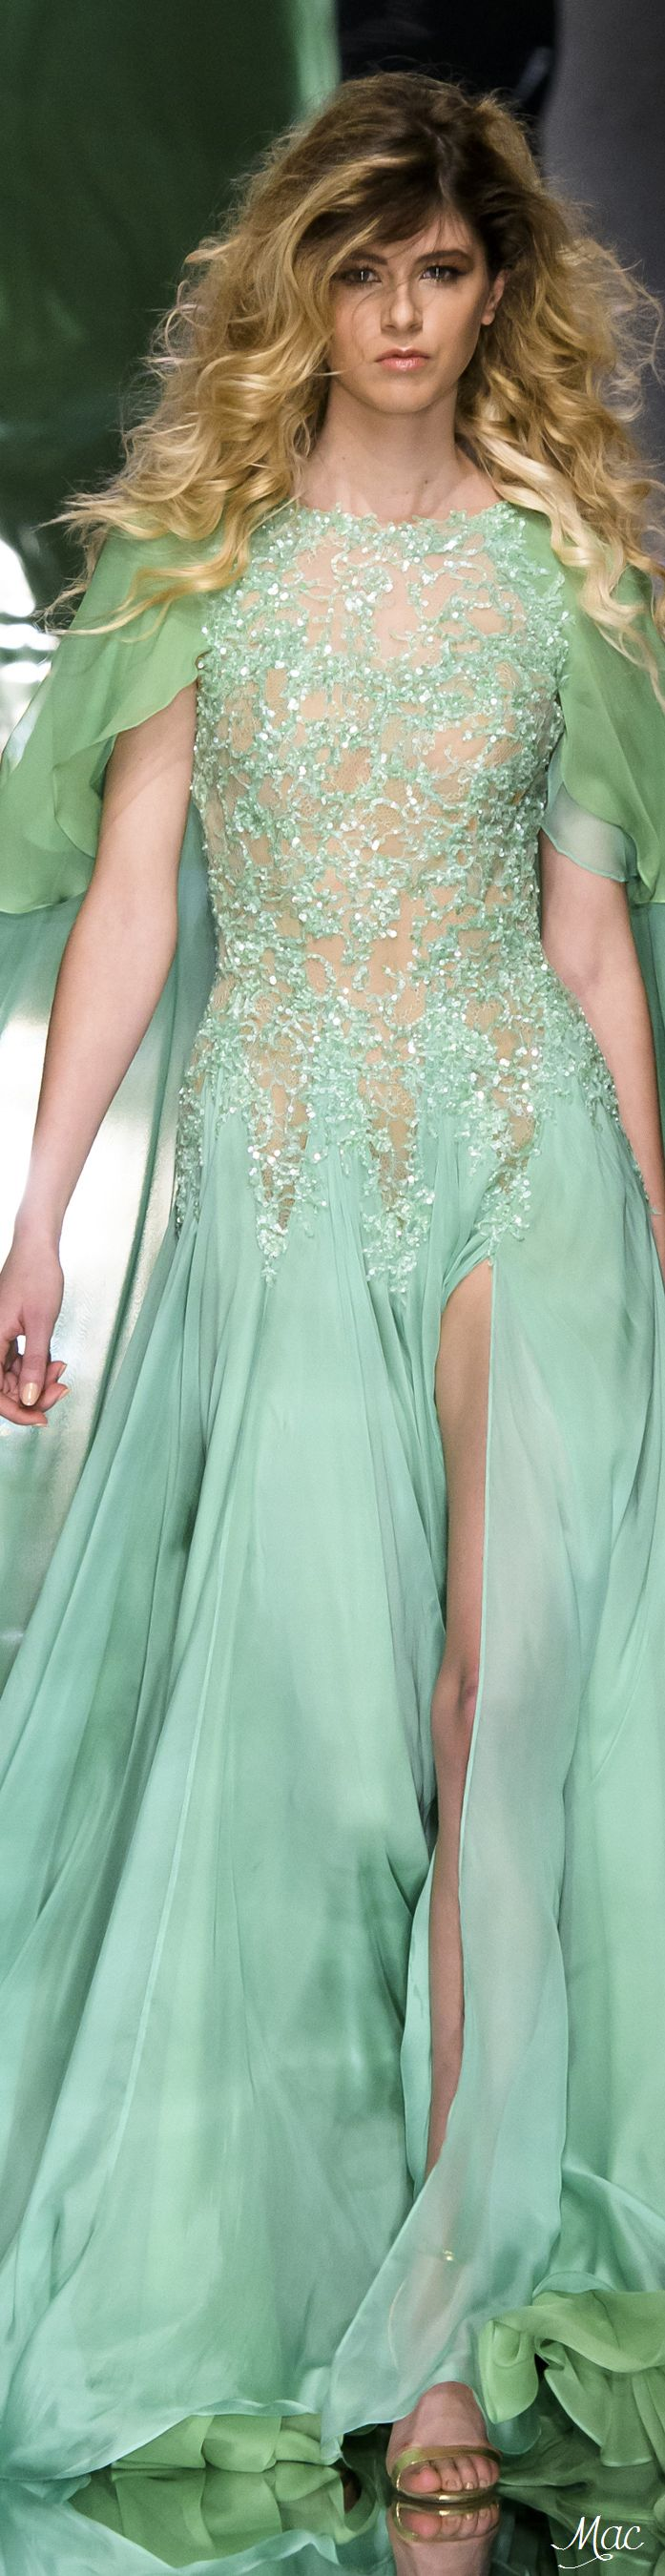 43543 best ♕♕Pretty DreSSeS & GoWns♕♕ images on Pinterest | High ...